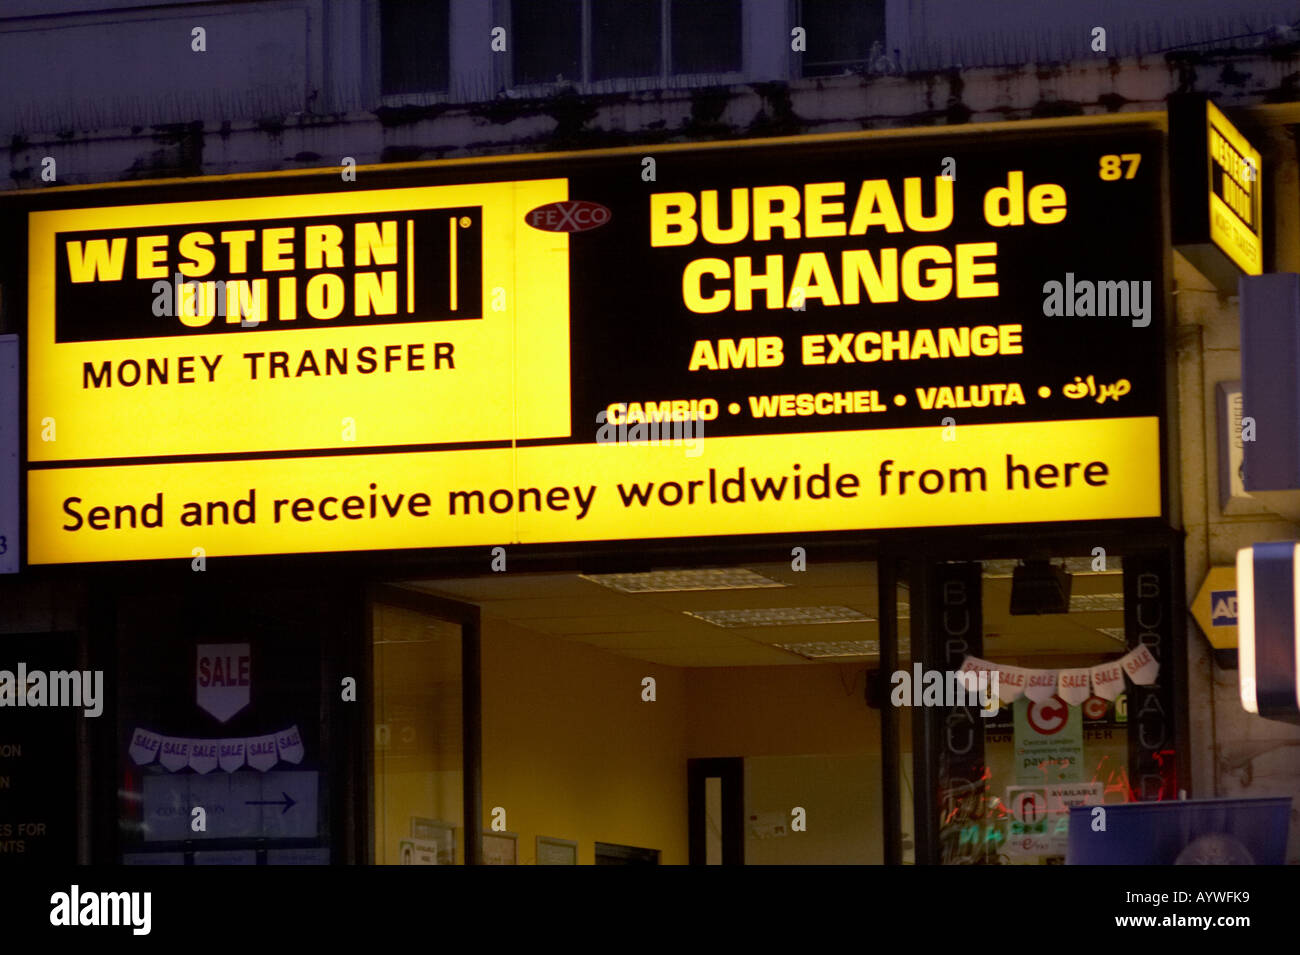 western union money transfer bureau de change in london uk. Black Bedroom Furniture Sets. Home Design Ideas